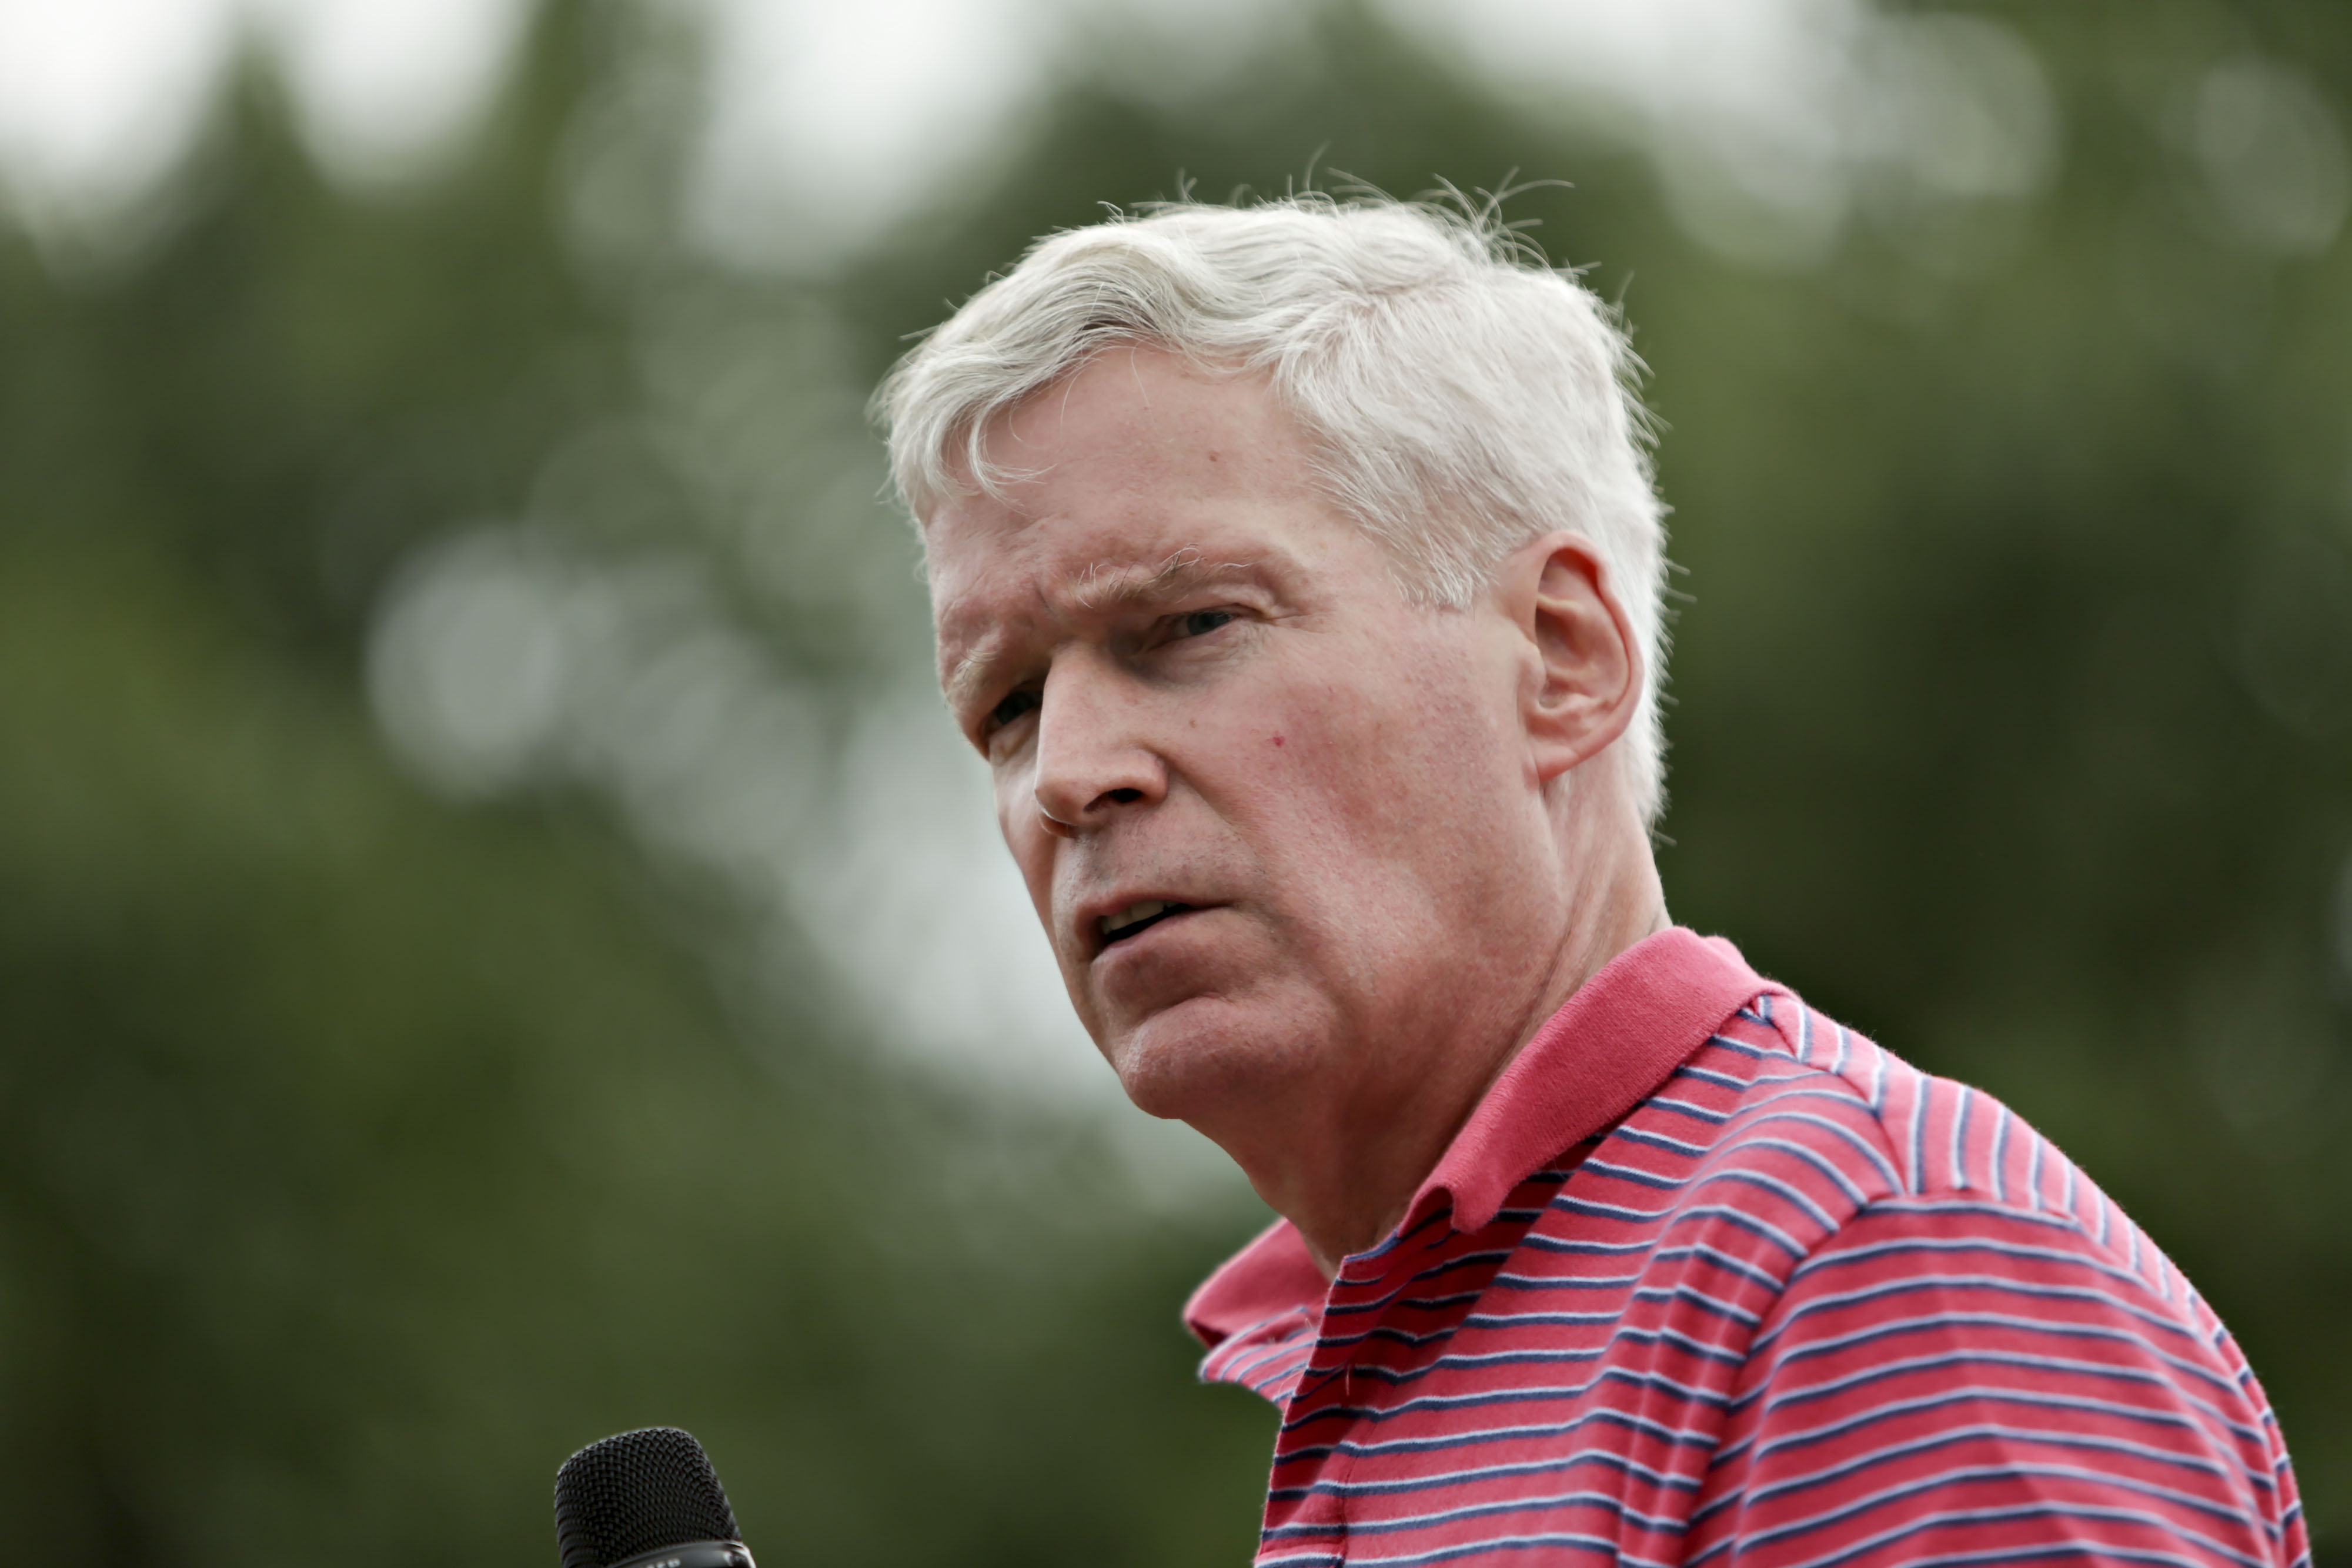 Mark Everson, former commissioner of the U.S. Internal Revenue Service and 2016 Republican presidential candidate, speaks at the Iowa State Fair Soapbox in Des Moines, Iowa, U.S., on Saturday, Aug. 22, 2015.